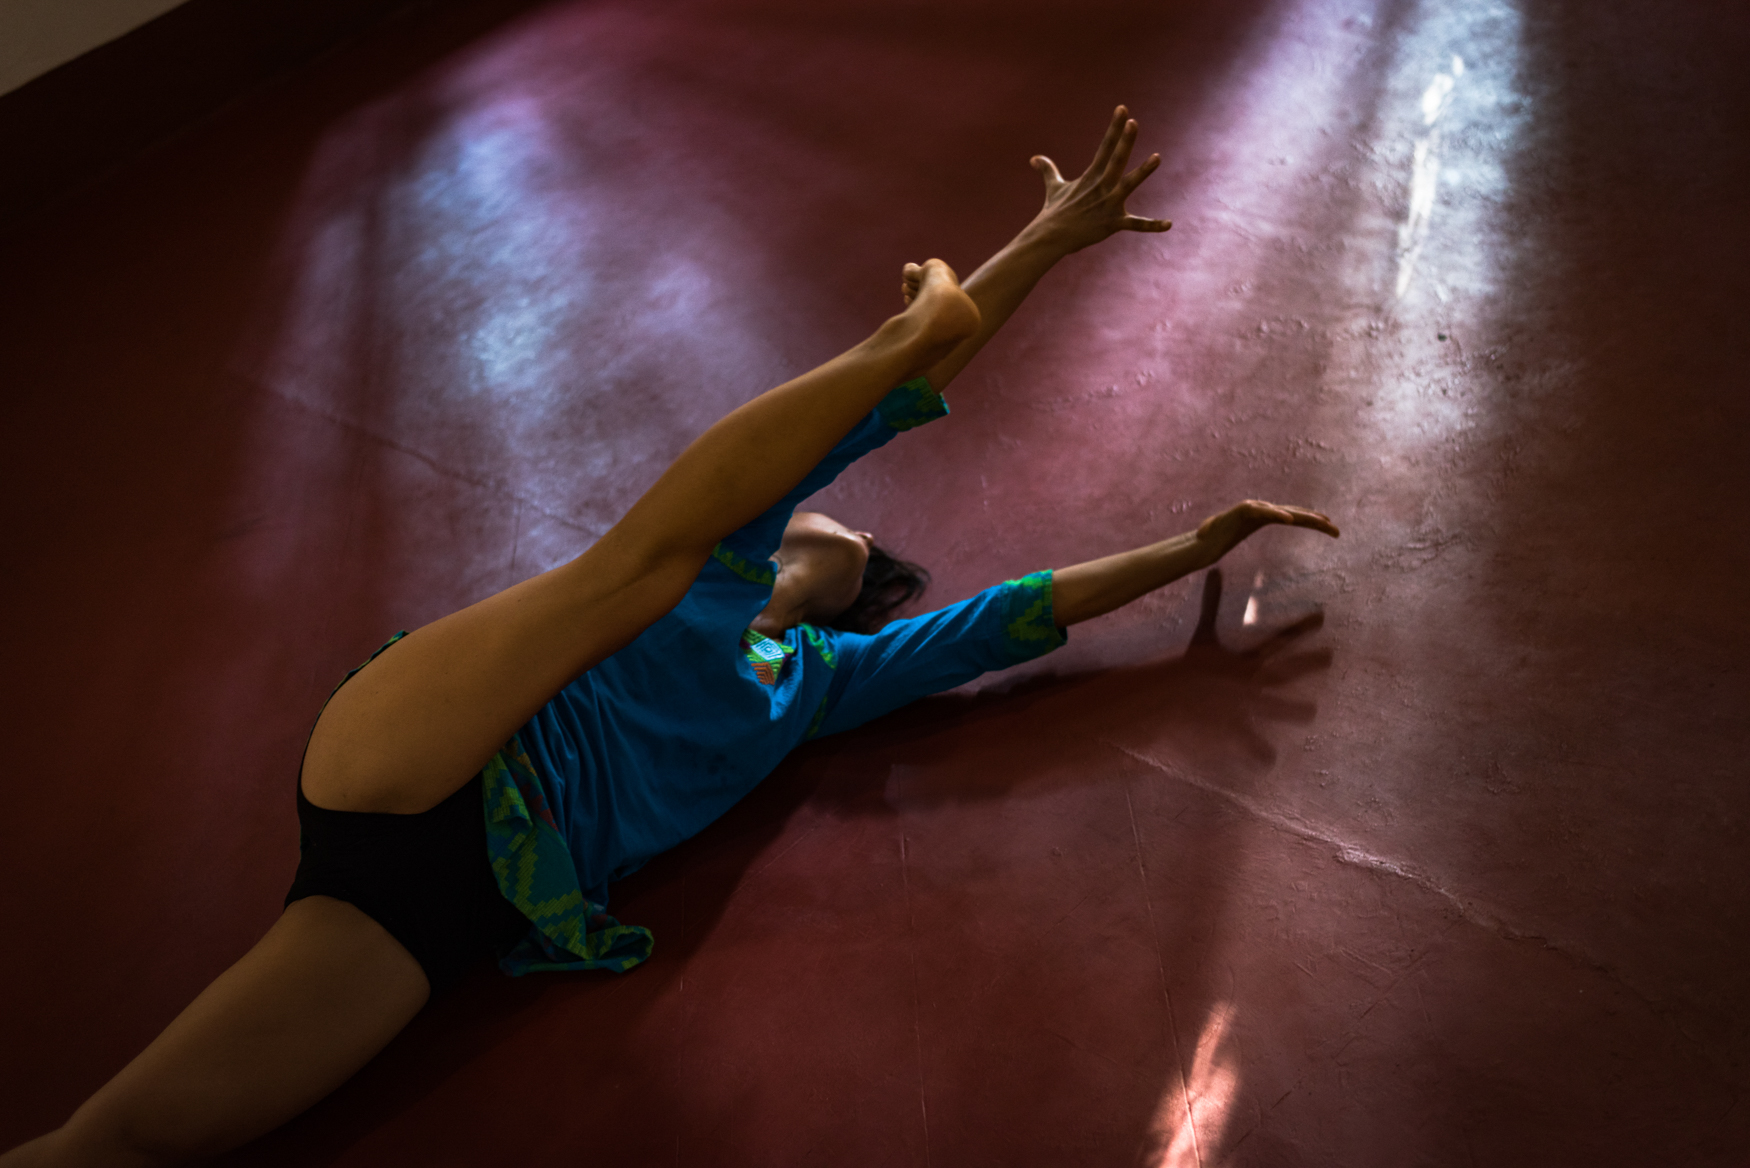 Yoga-Inspired-Practices-Photography-Costa-Rica-16.jpg